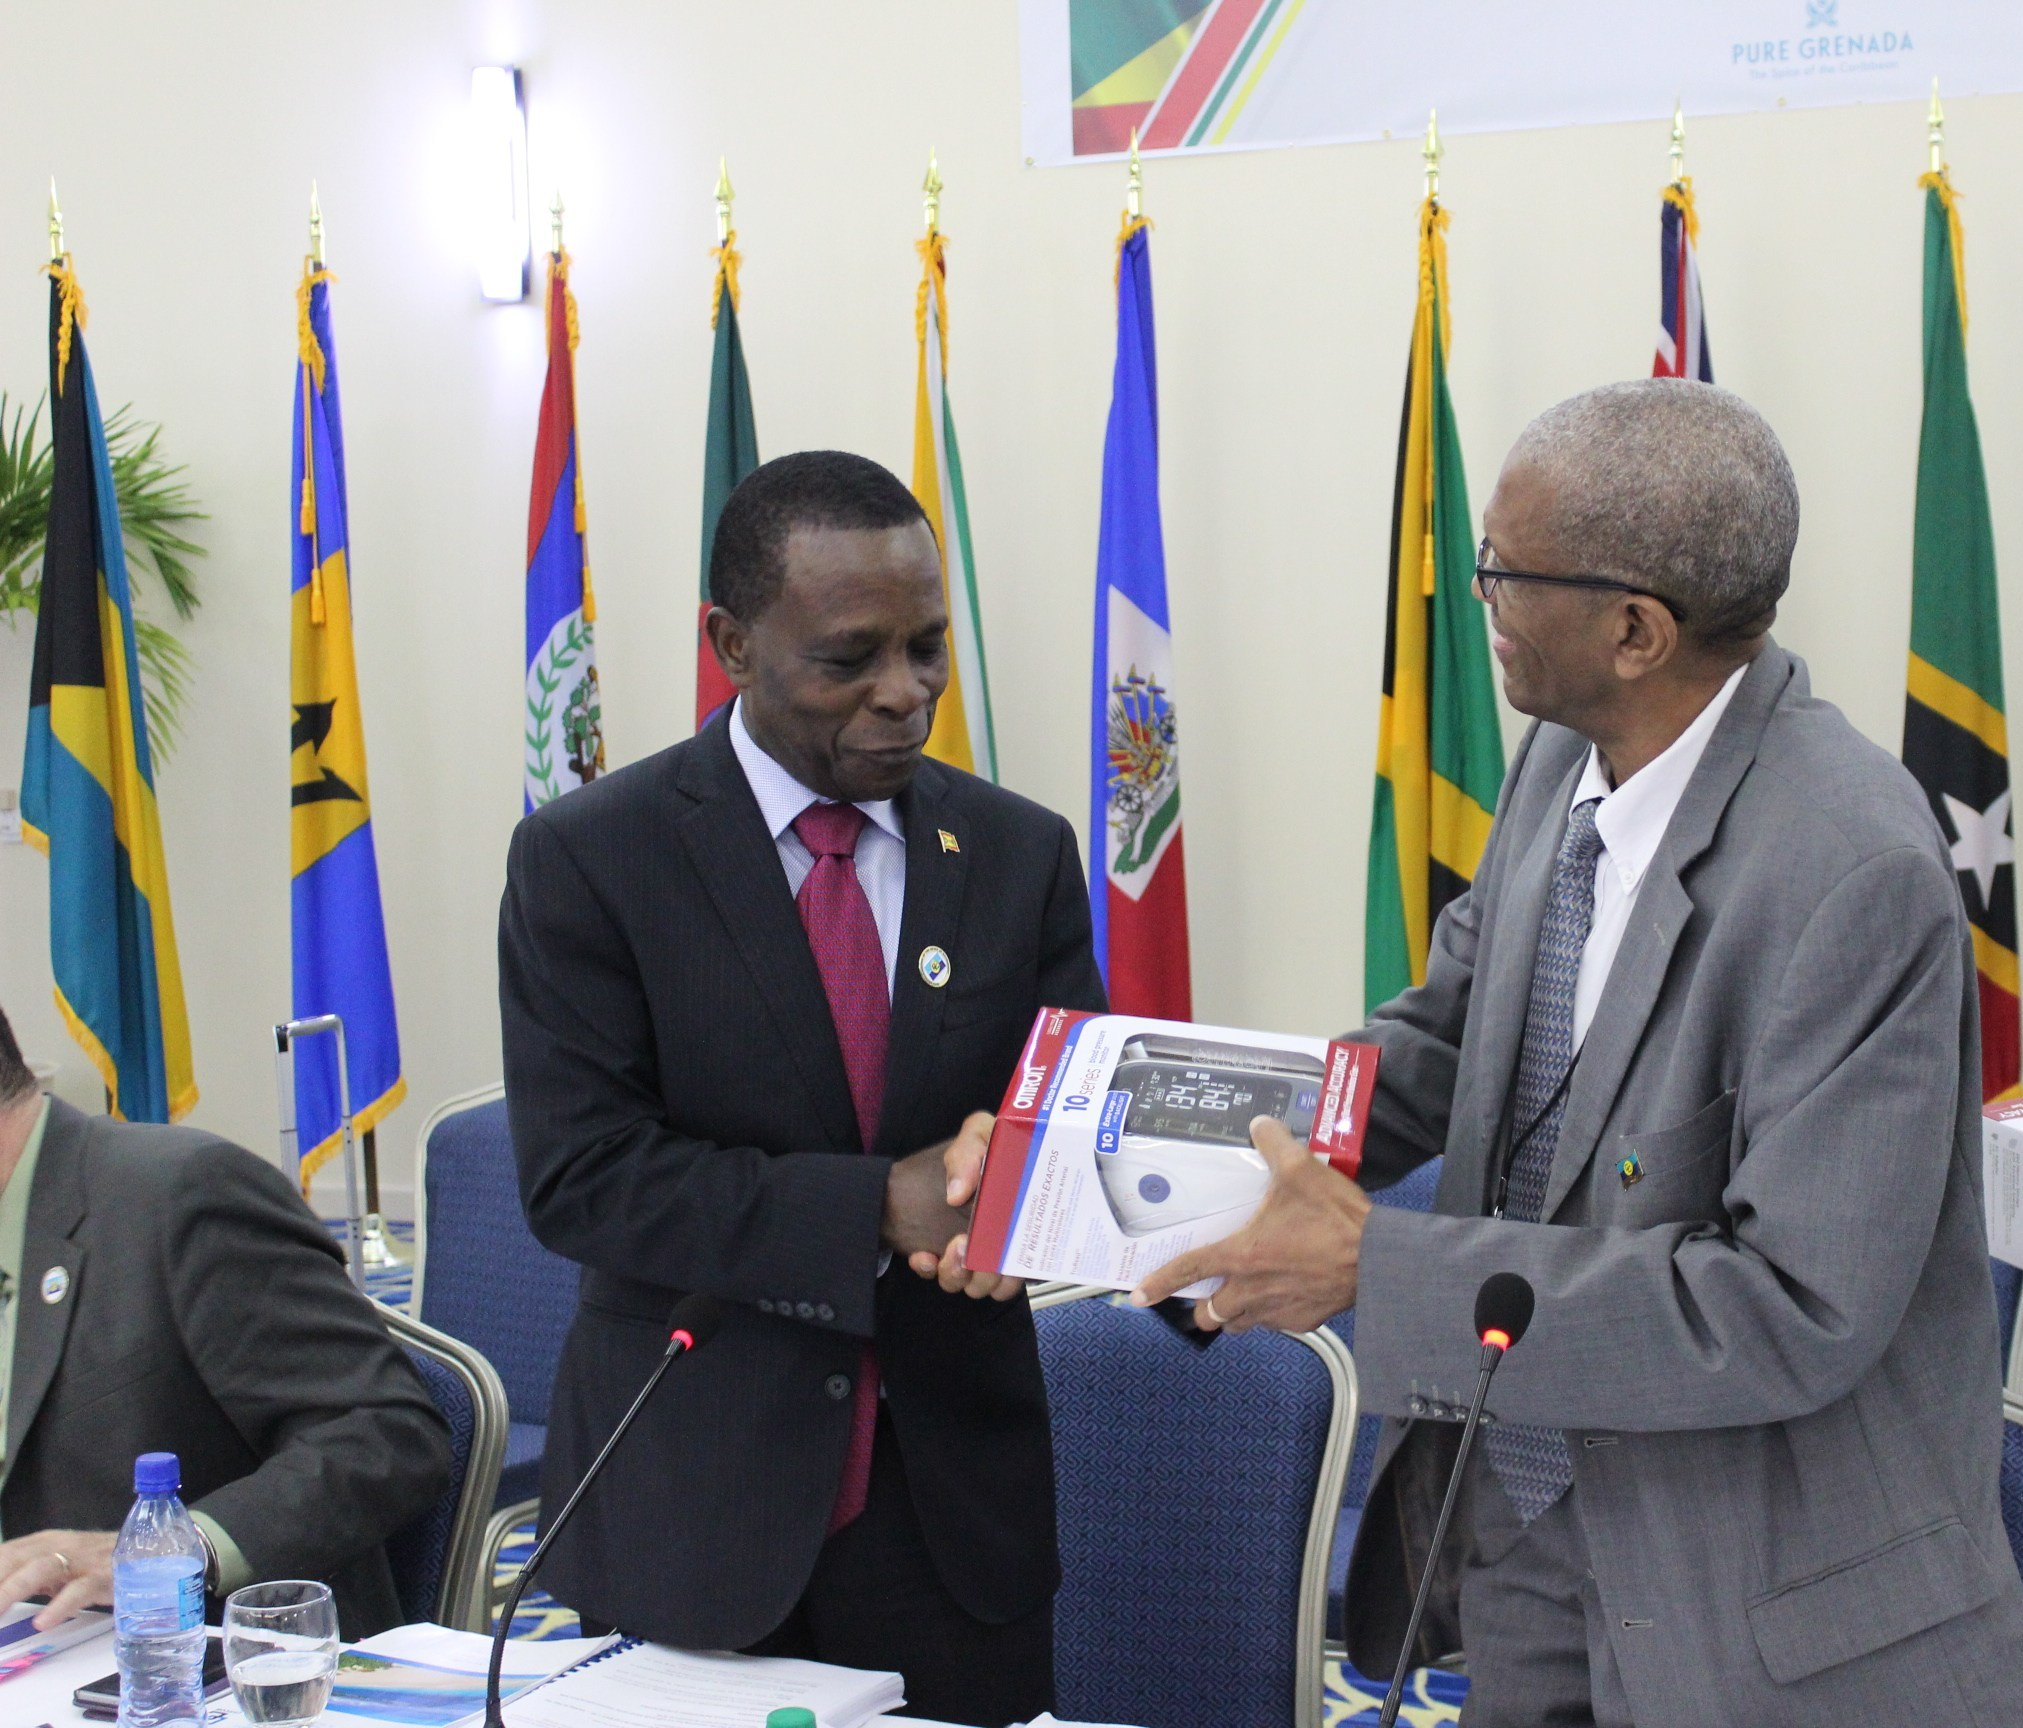 CARICOM Chairman, Prime Minister Dr. Keith Mitchell of Grenada receives a Blood Pressure Apparatus from CARICOM Assistant Secretary-General Human and Social Development, Dr. Douglas Slater